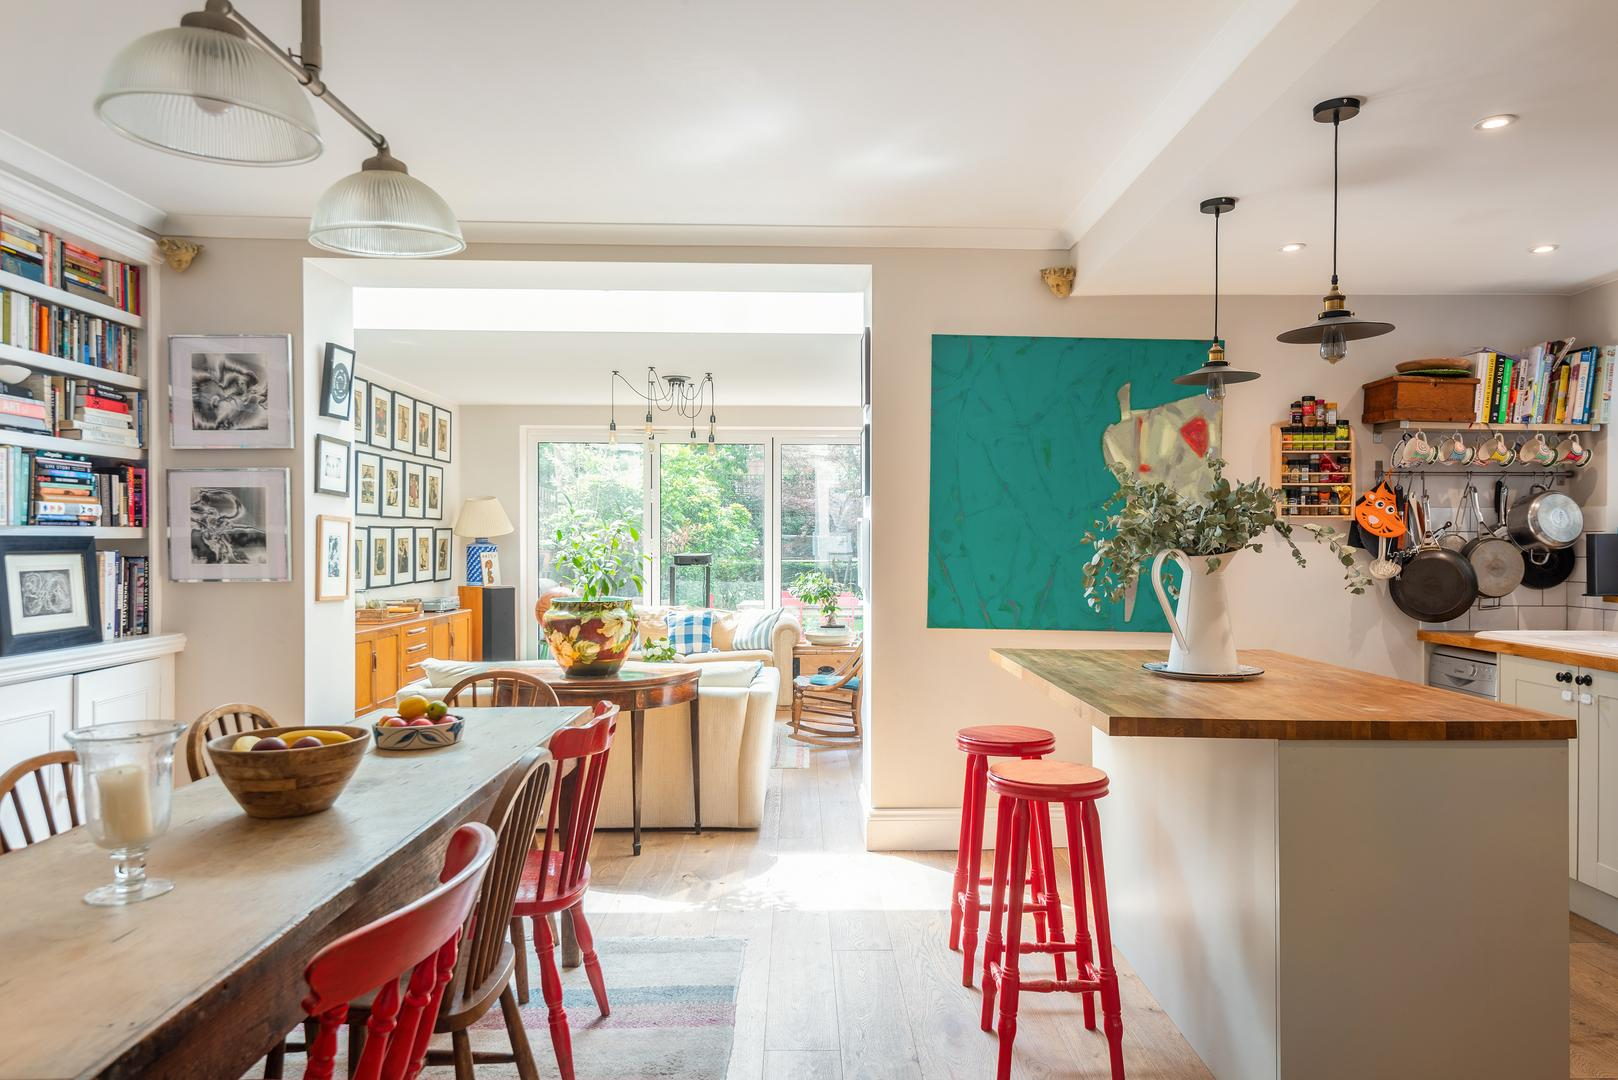 Property Image 2 - Colourful Quirky Shepherd's Bush Apartment by Westfield